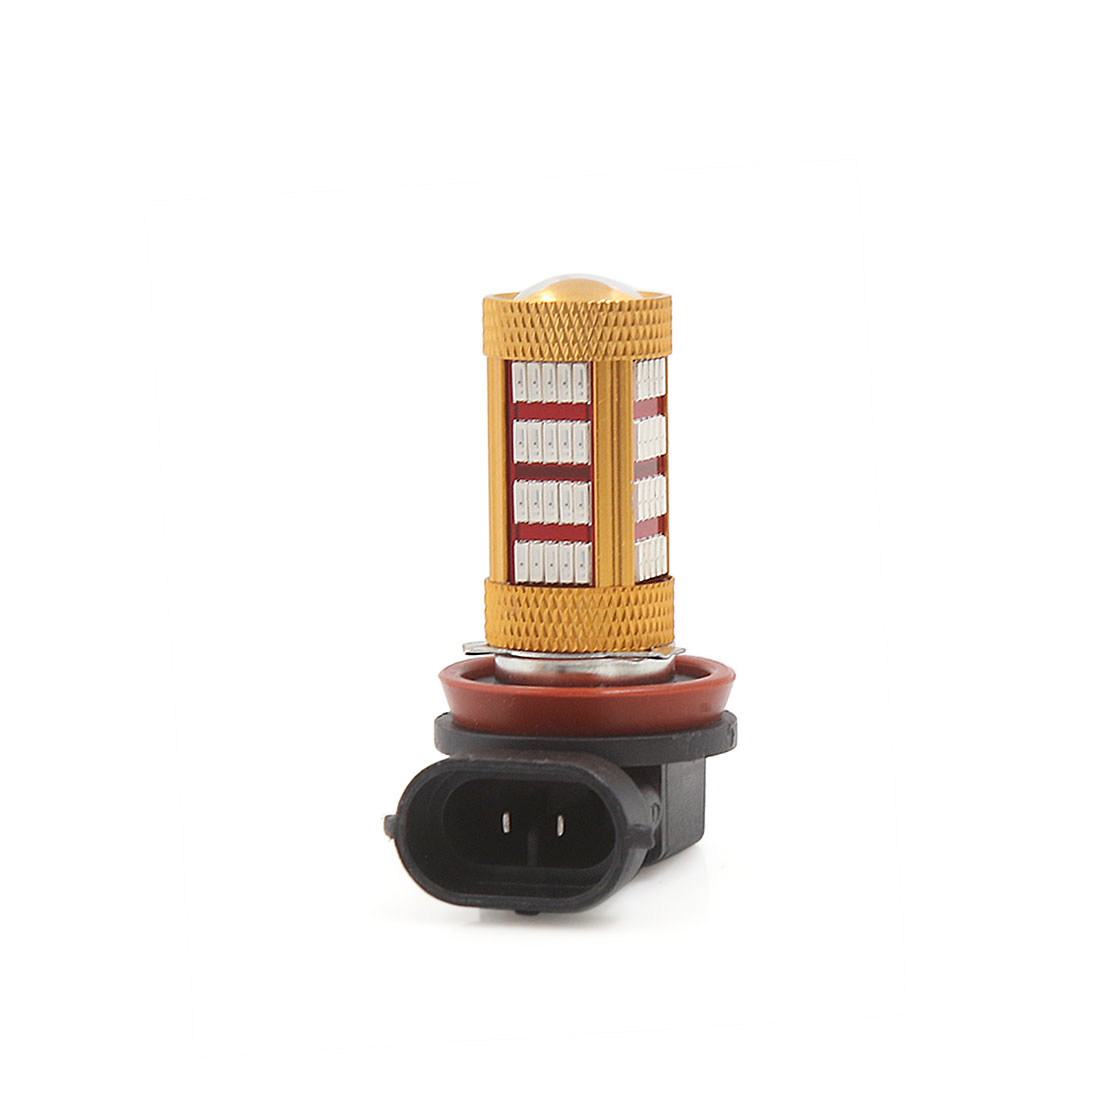 DC 12V H8 H11 92 Red LEDs 4014 SMD Driving Fog Lamp Light Bulb for Car